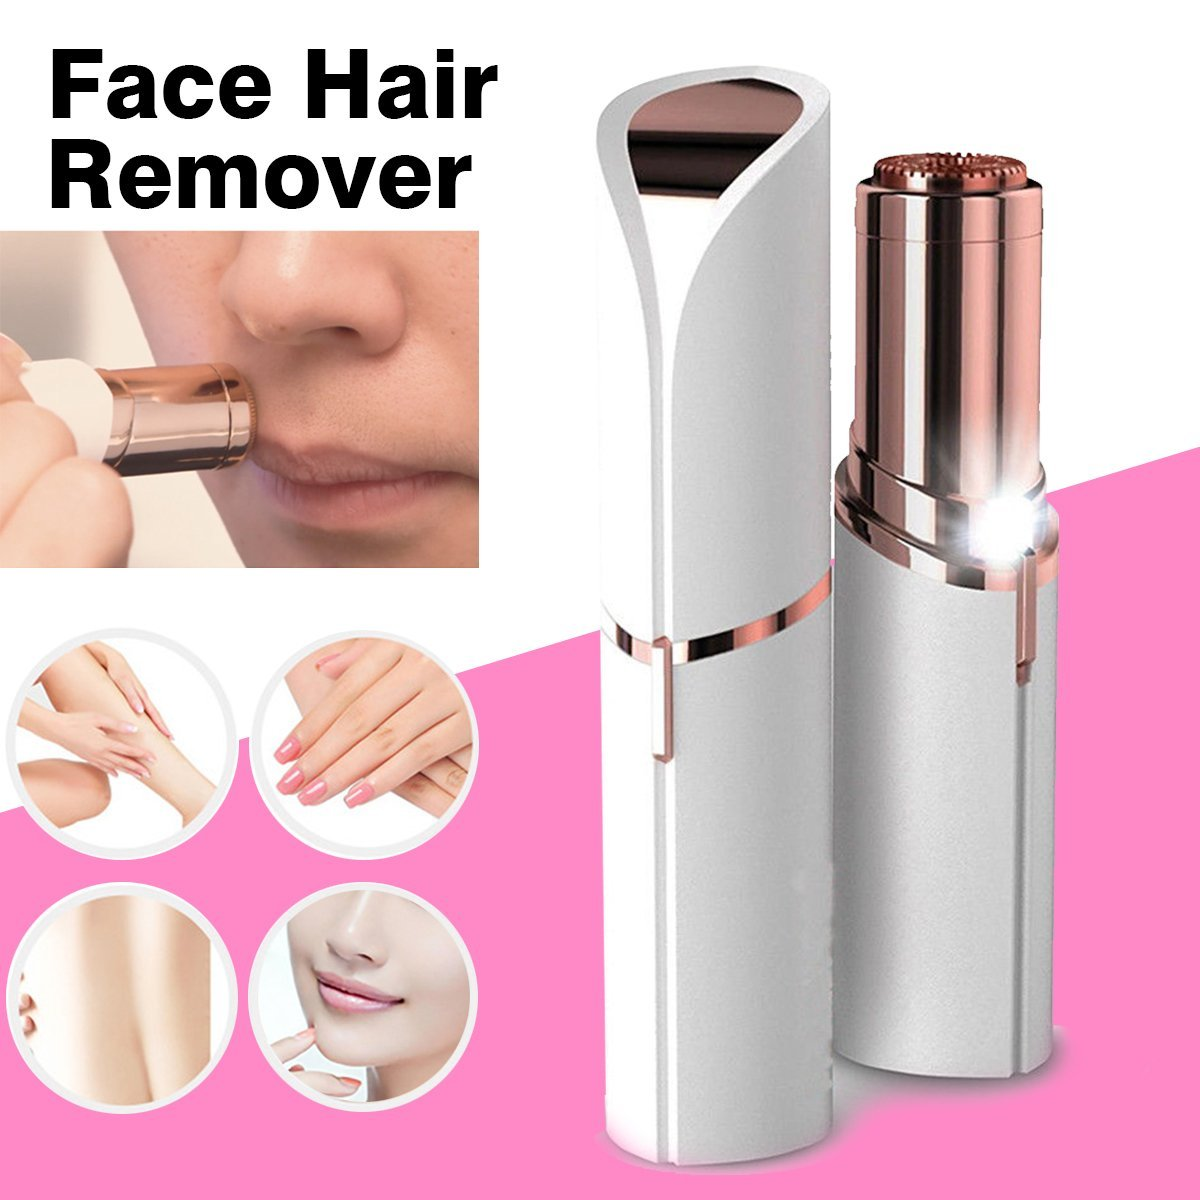 Flawless Instant Hair Remover™ Lipstick shape Electric eyebrow shaping device